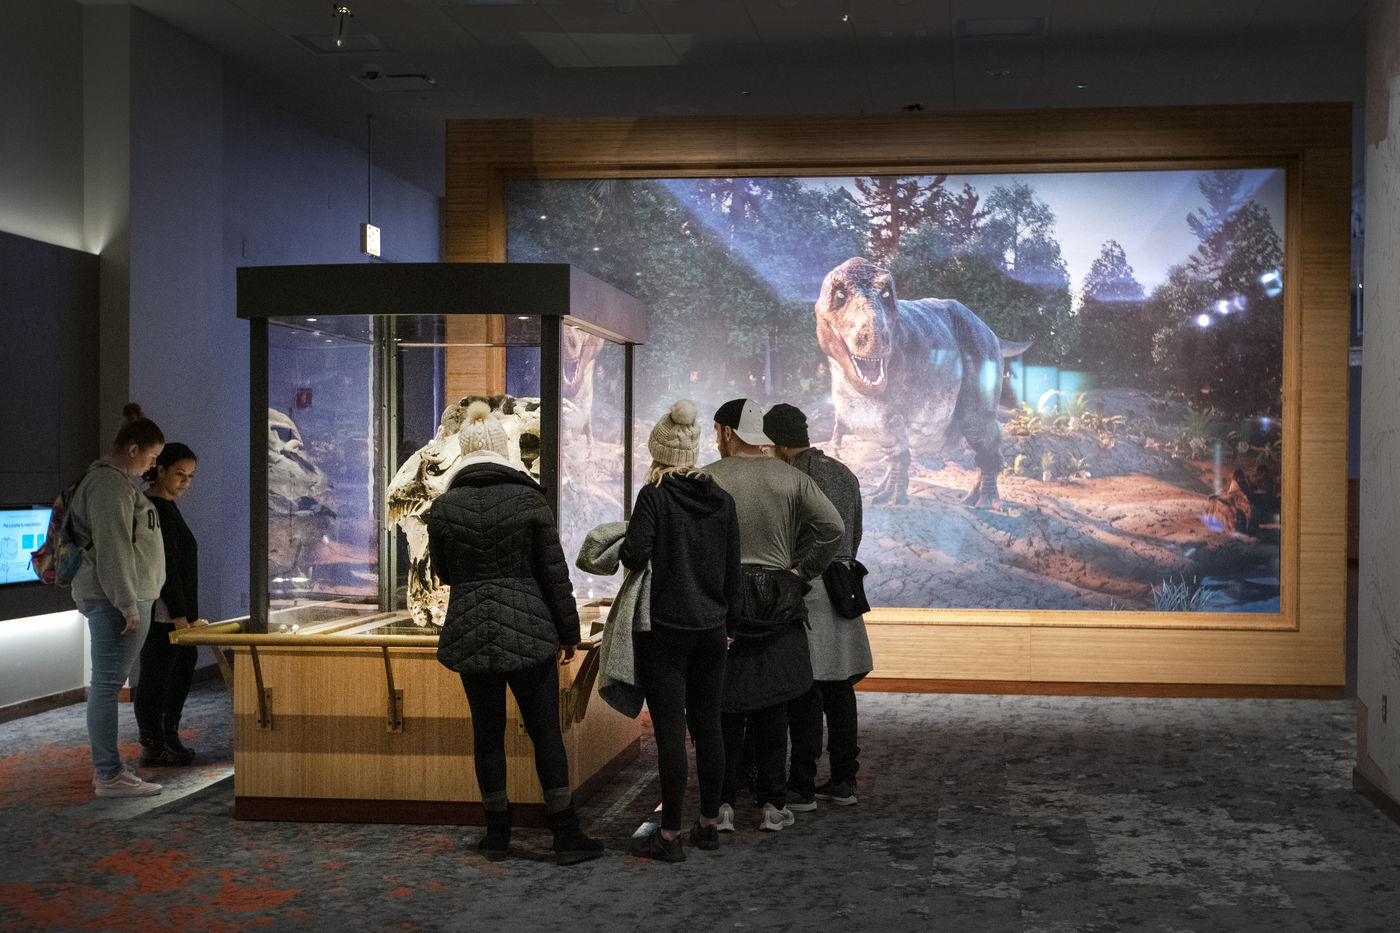 A group of people stand around a display case with a dinosaur skull in it. Behind them, a large mural depicts a T. rex walking through a forested landscape. Its mouth is slightly open and its bright green eyes seem to be looking right at you.